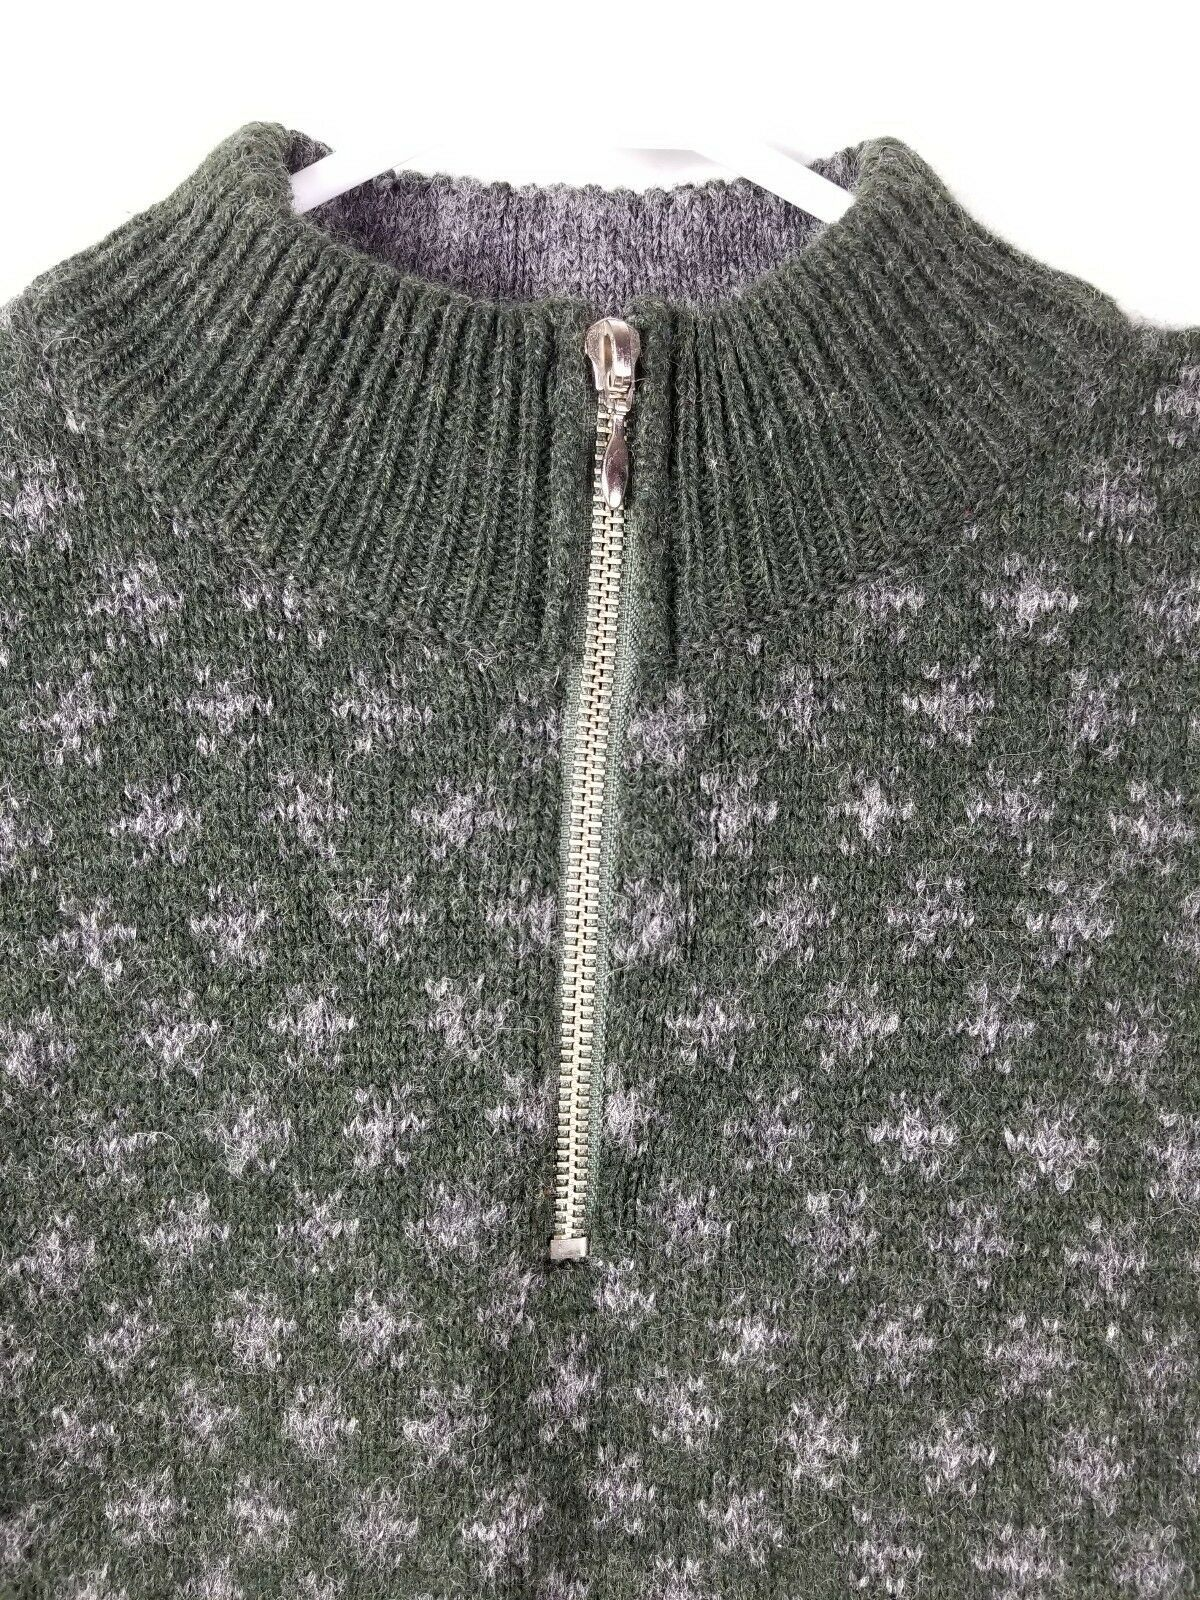 J Crew Outfitters Mens Sz XL Sweater Vintage Crewneck Pullover Wool Green Gray